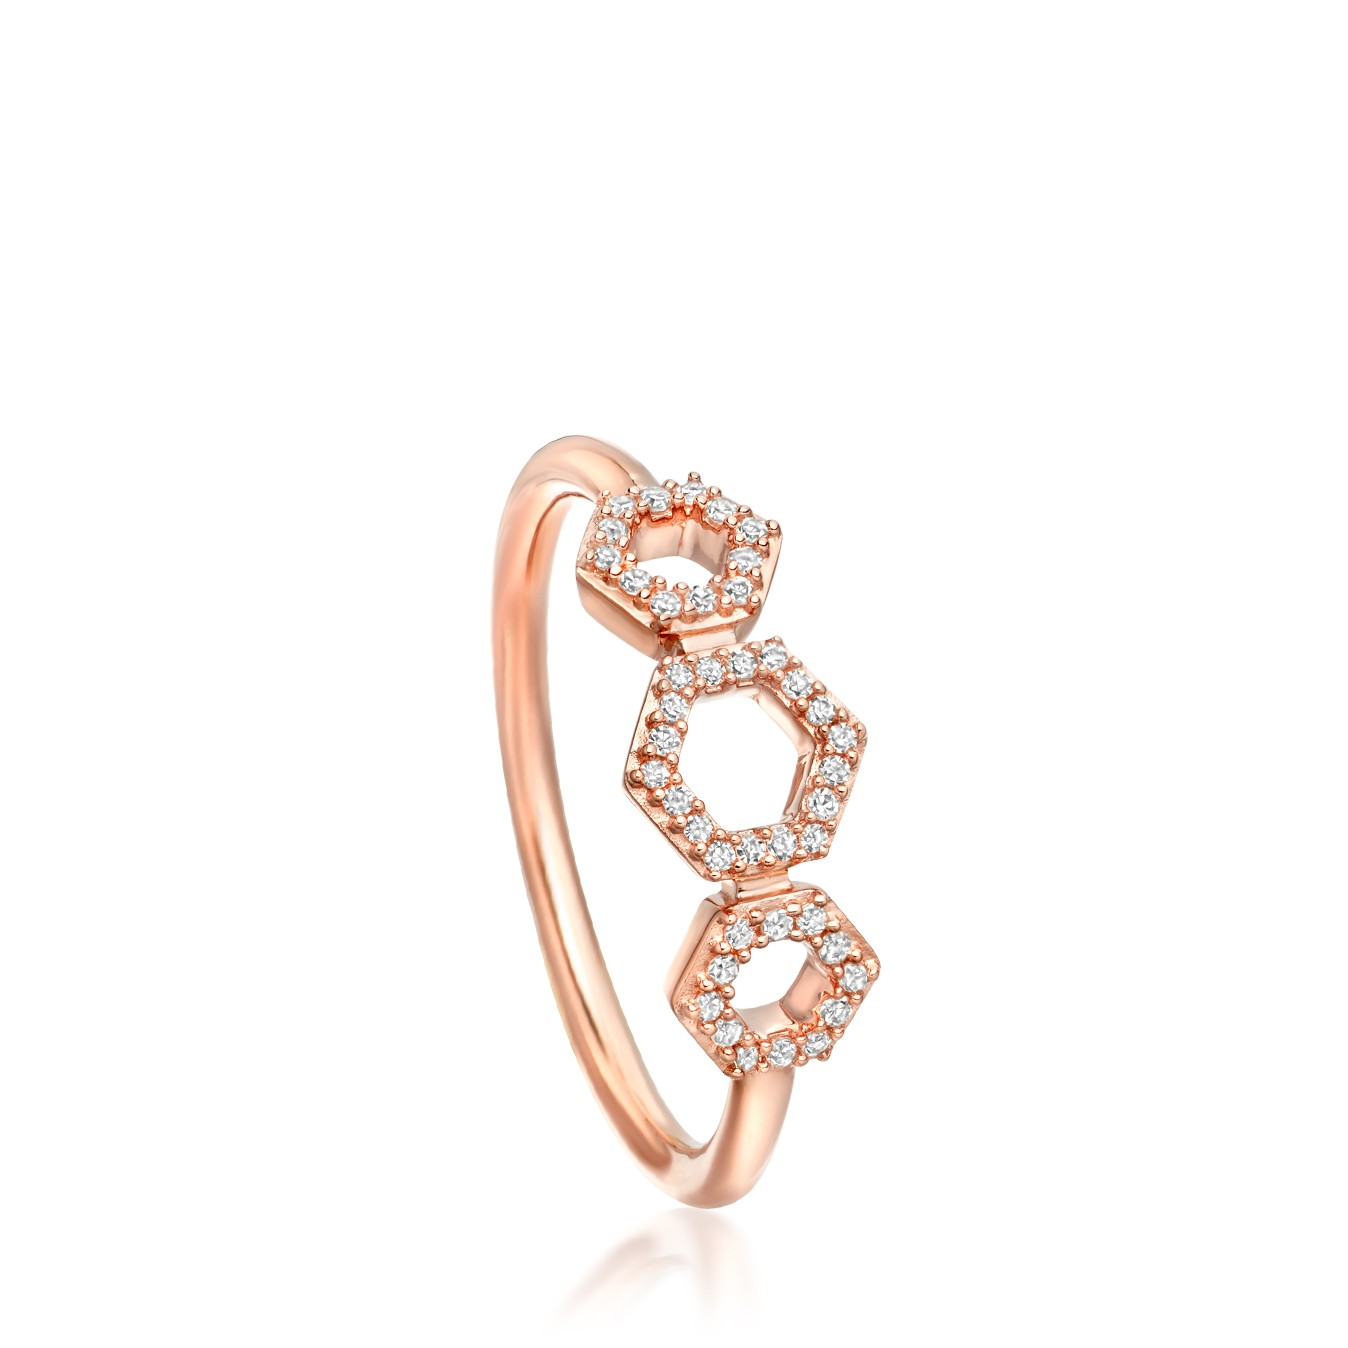 Astley Clarke Triple Honeycomb Diamond Ring - British luxury jewellery - UK style blog